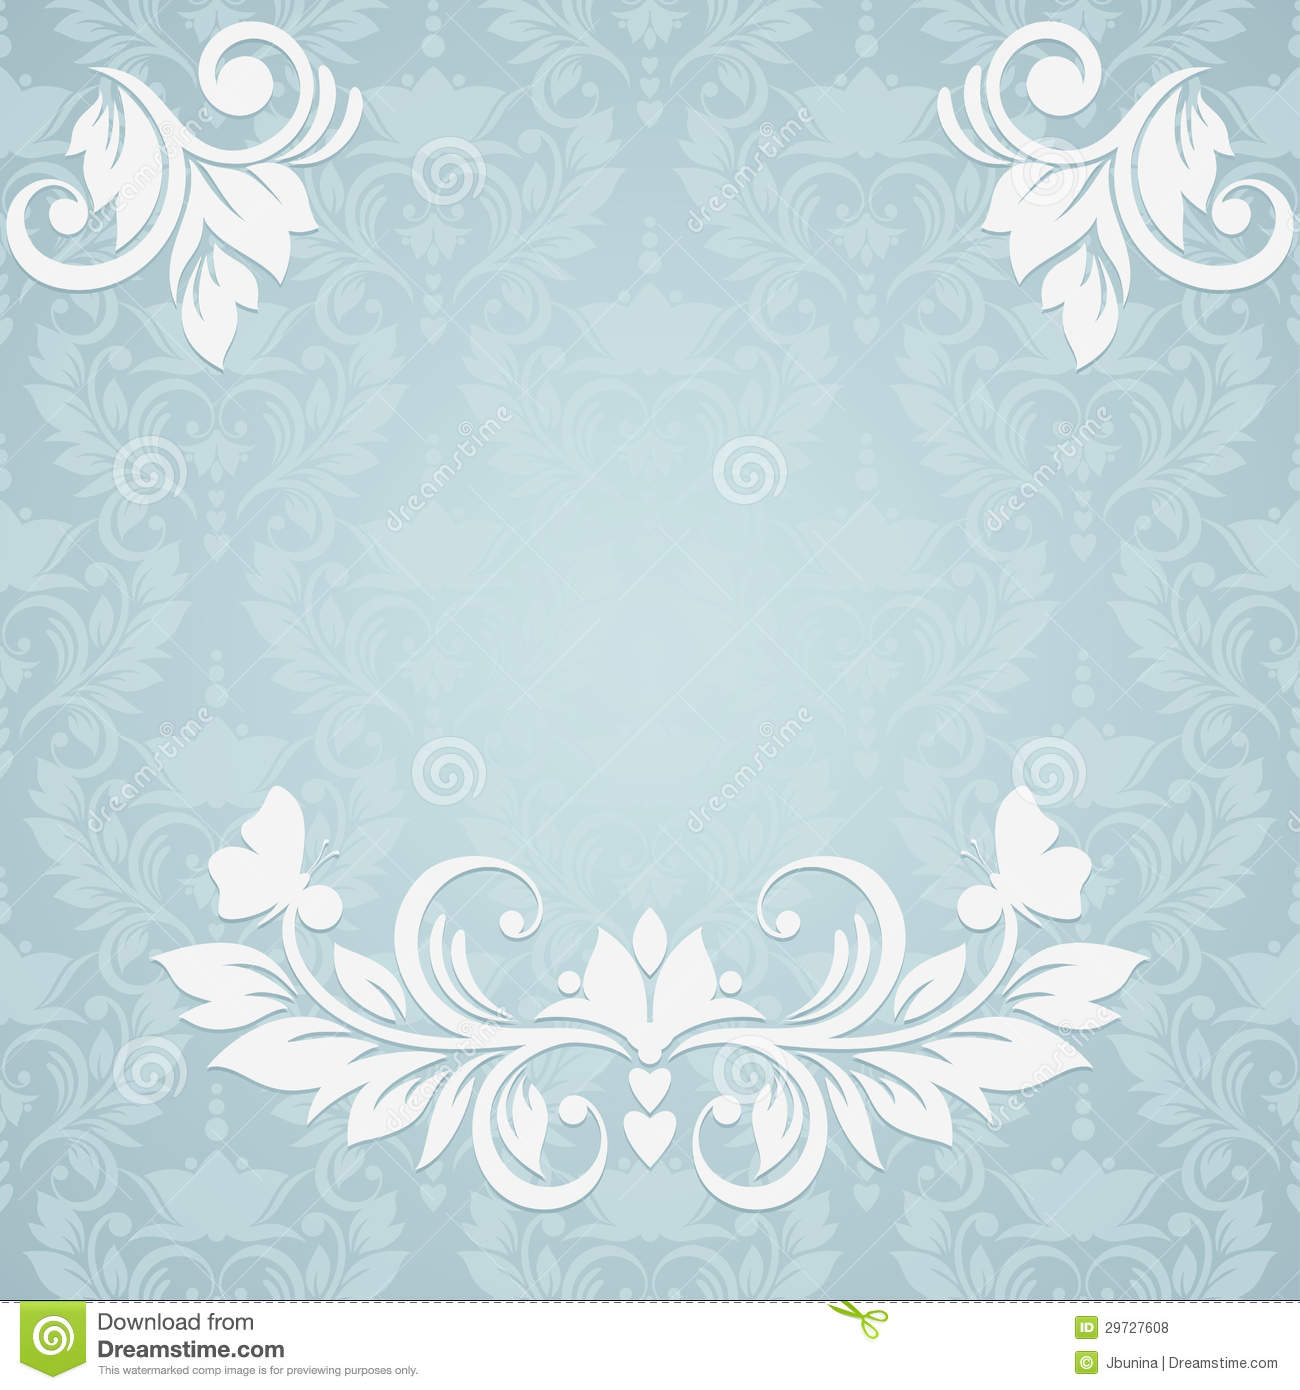 Invitation Card With Abstract Floral Background. E Stock Vector - Image: 29727608